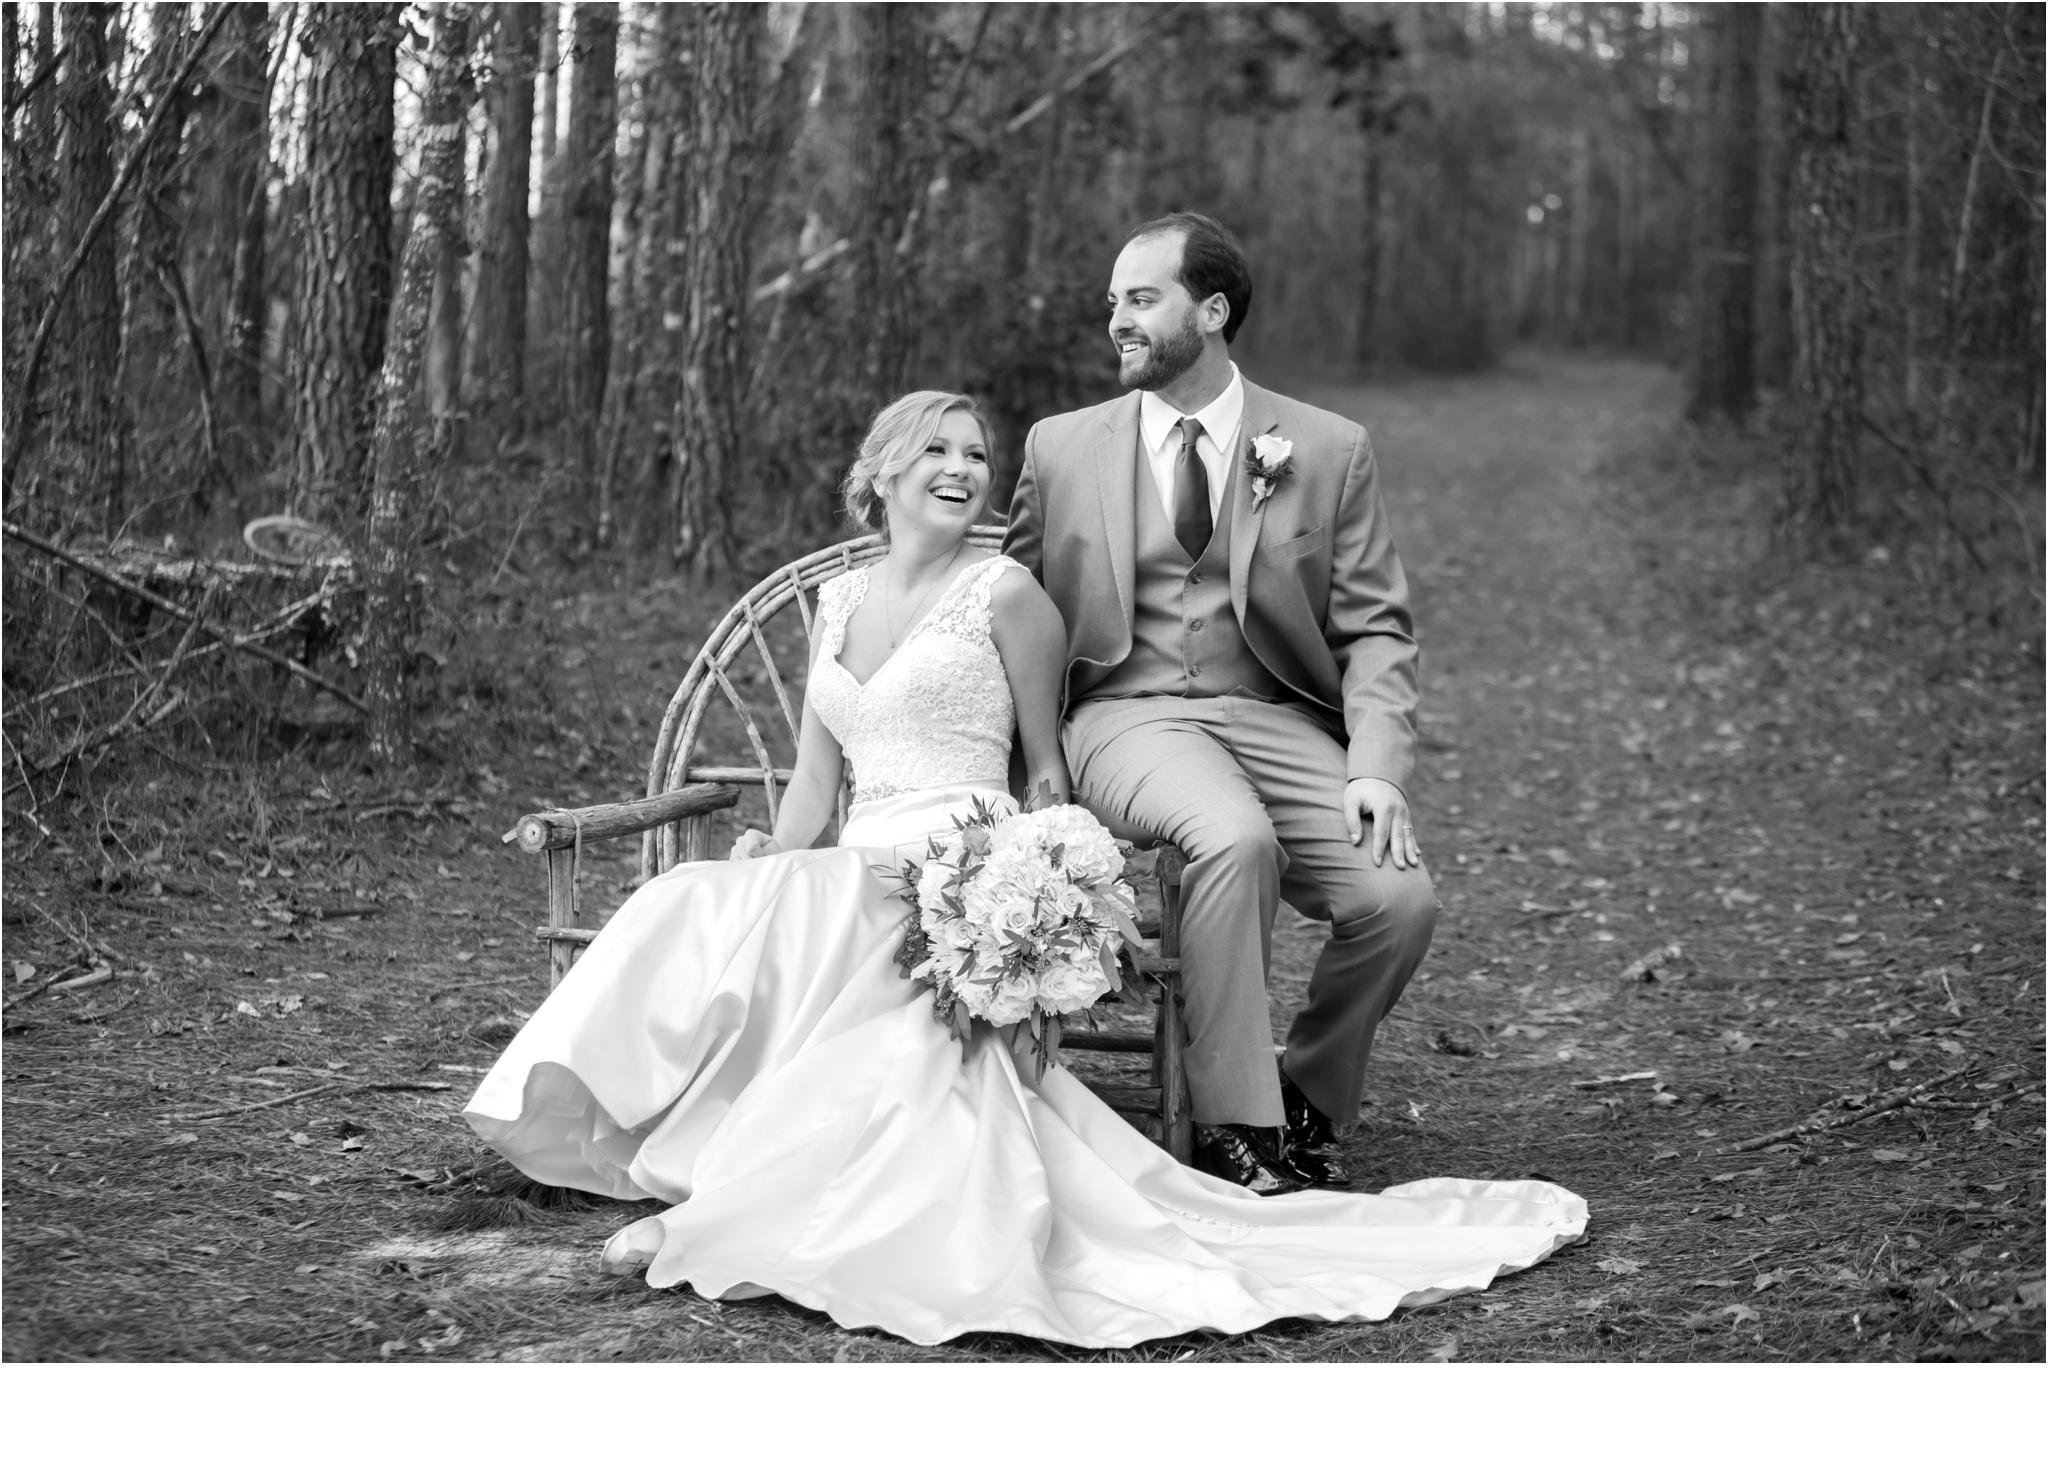 Rainey_Gregg_Photography_St._Simons_Island_Georgia_California_Wedding_Portrait_Photography_0501.jpg